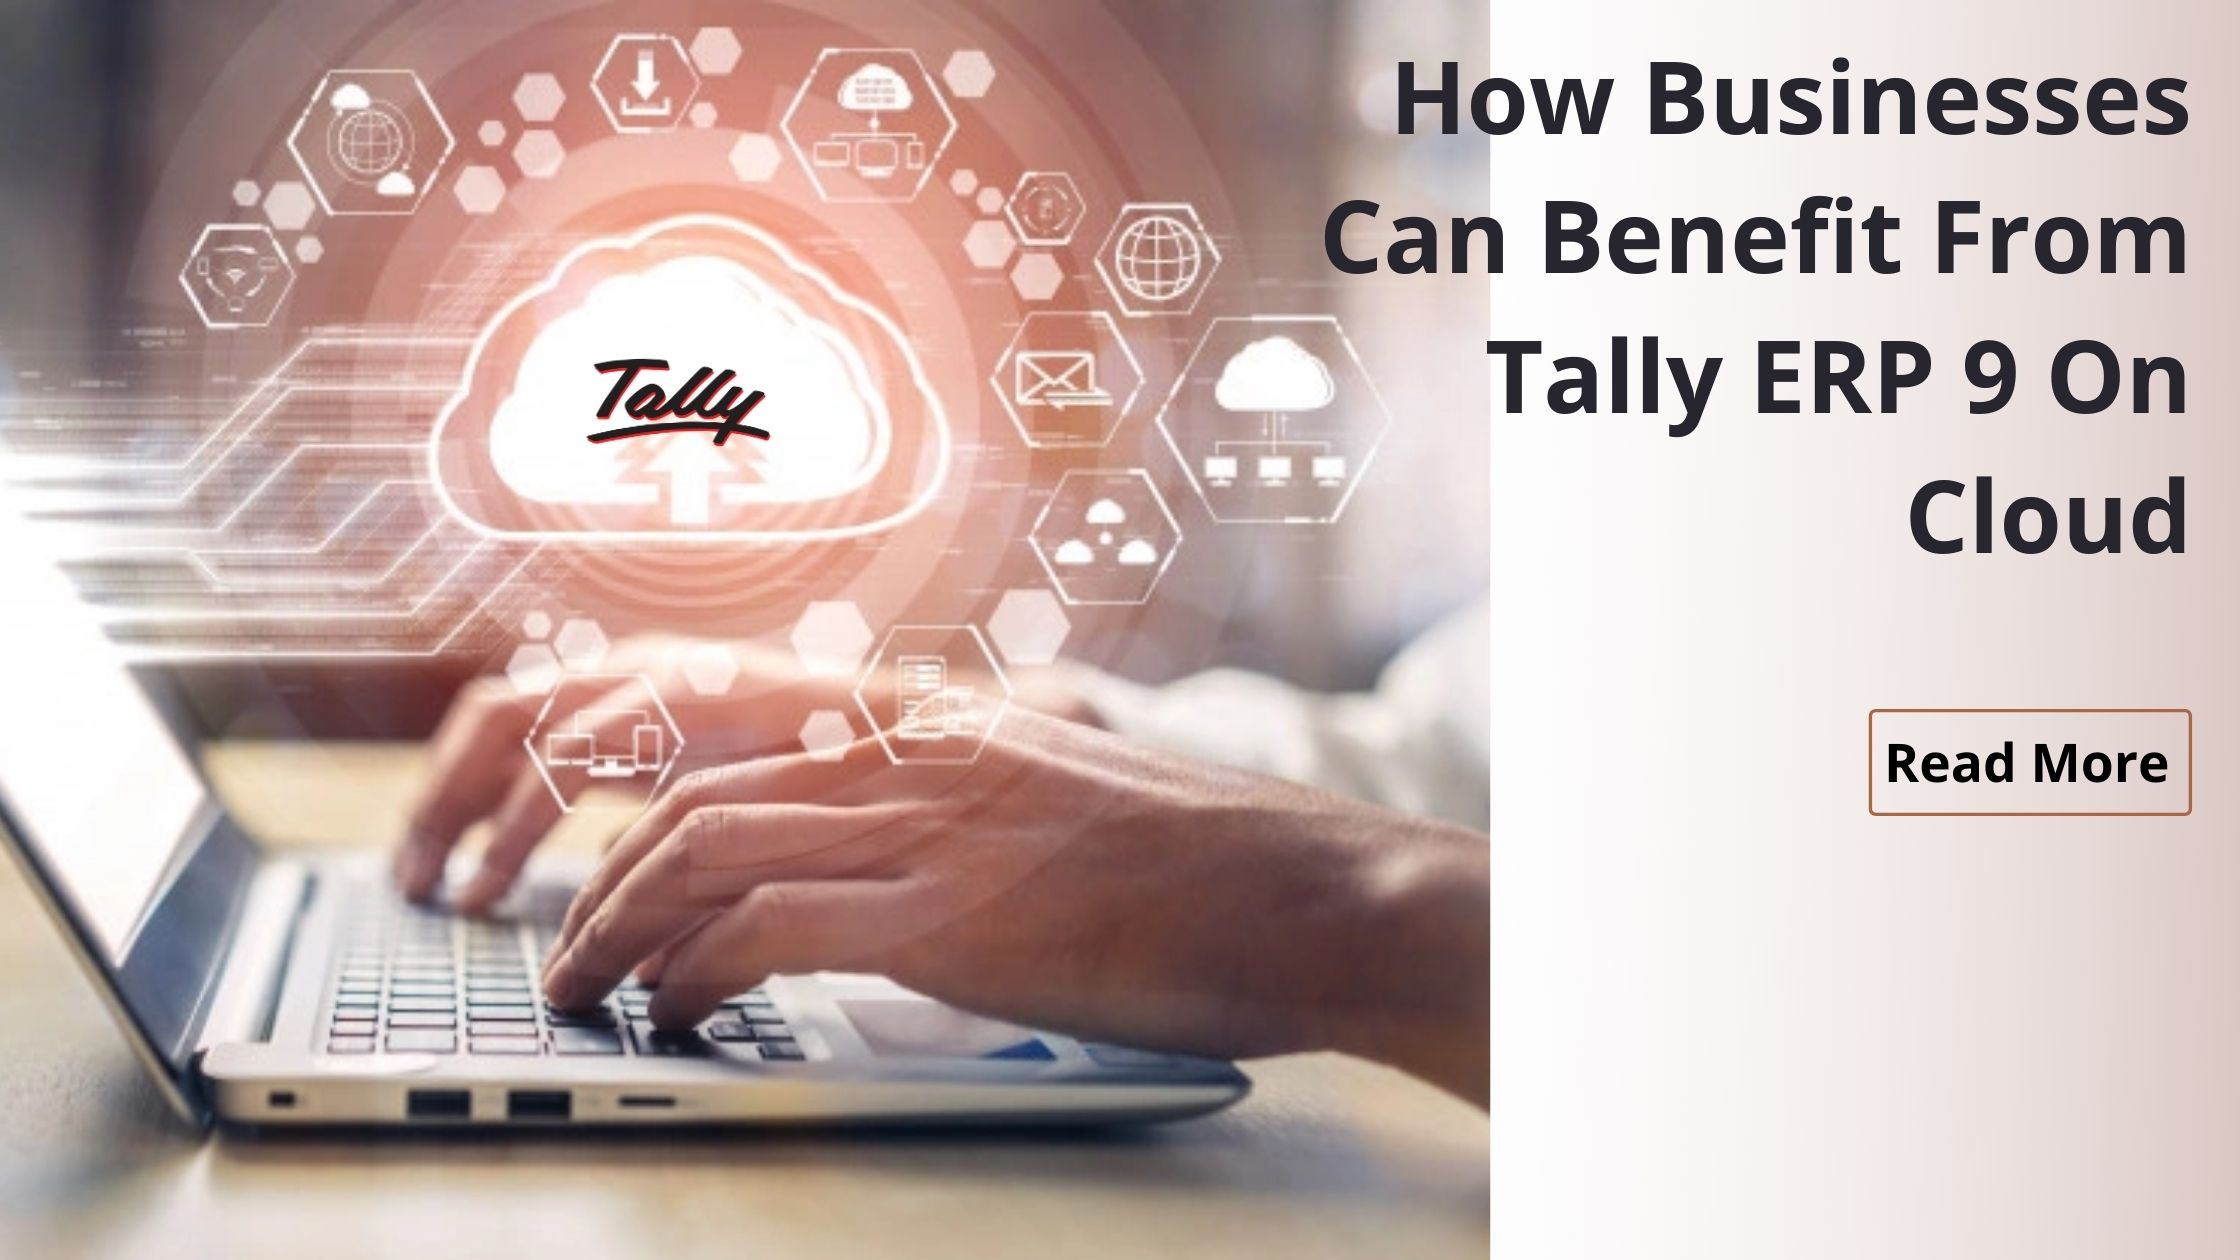 Tally ERP 9 On Cloud Benefit